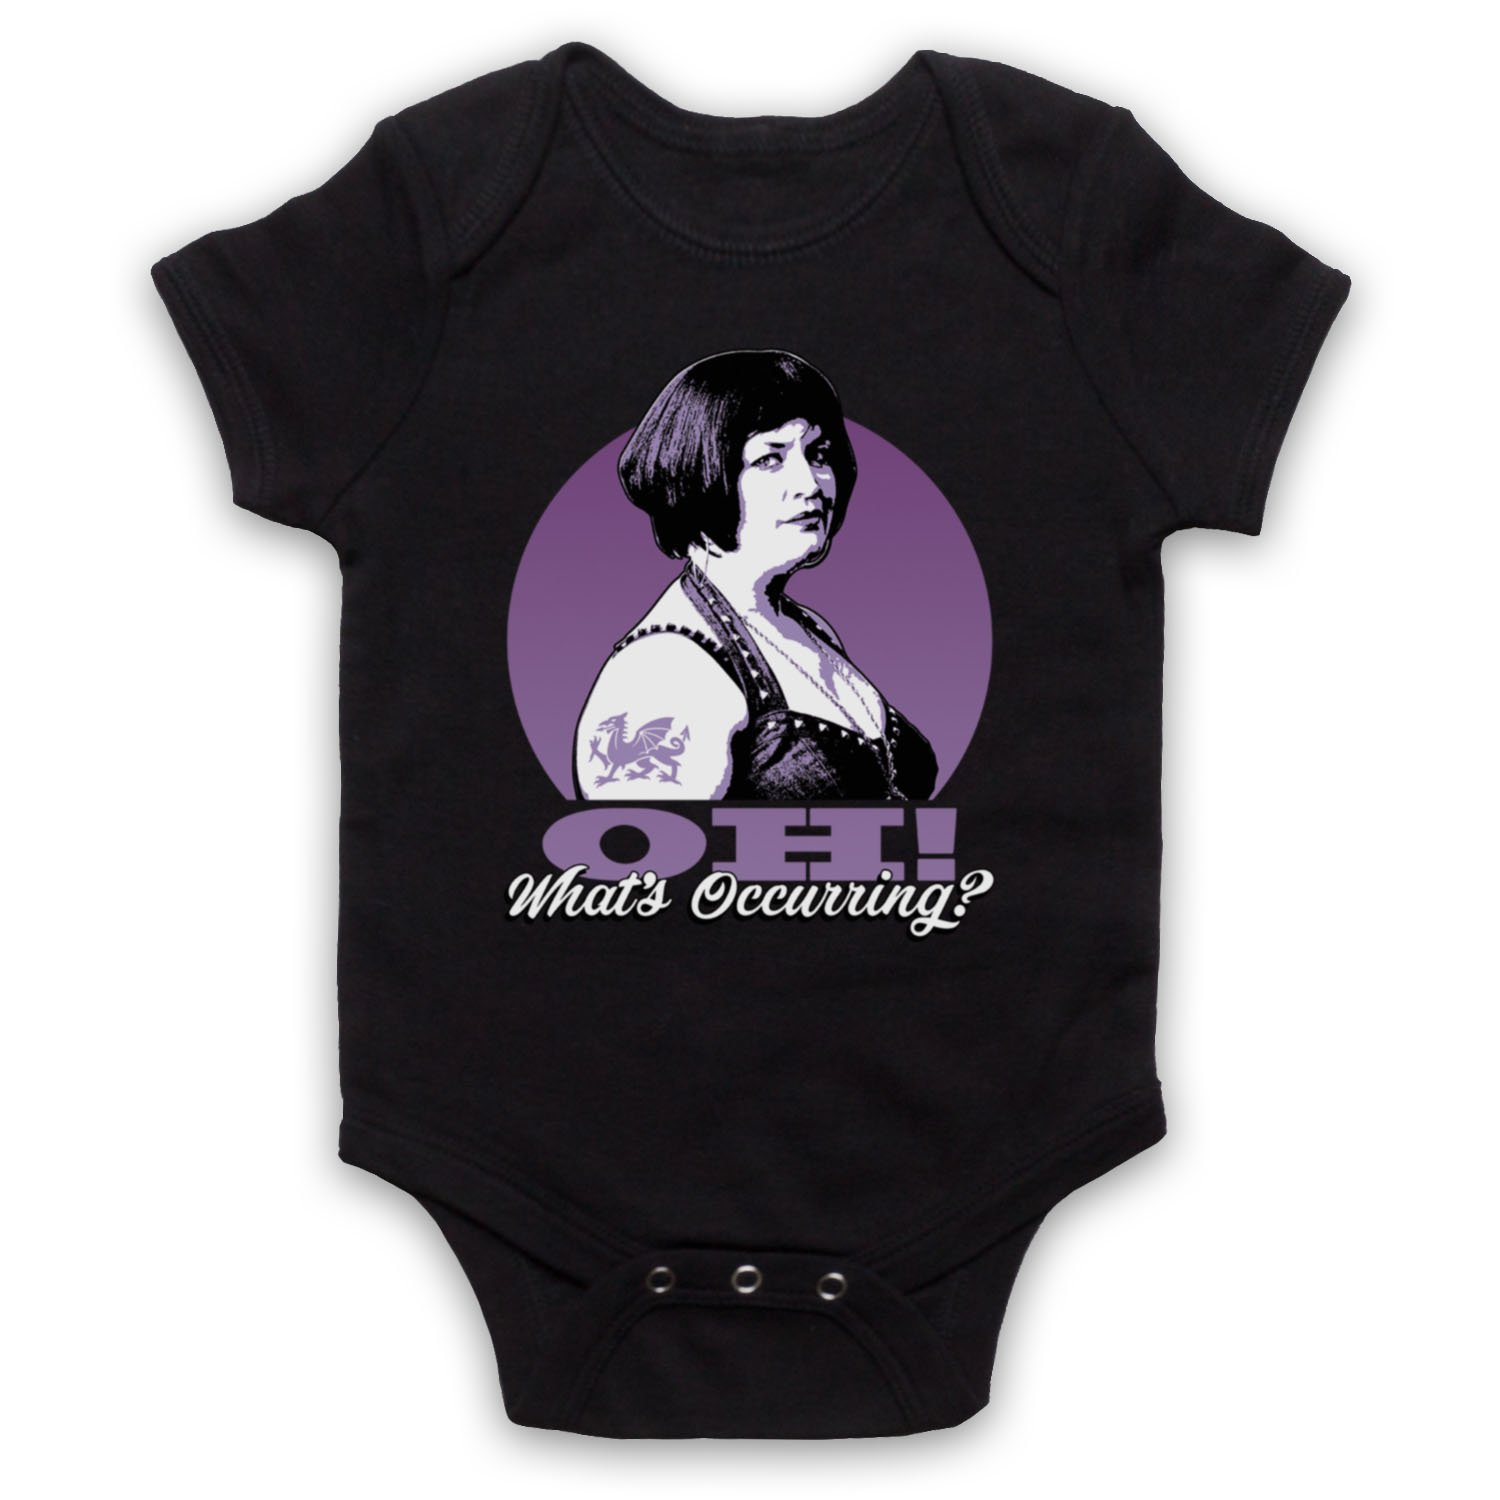 Inspired Apparel Inspired by Gavin Ness Oh Whats Occurring Comedy TV Unofficial Baby Grow